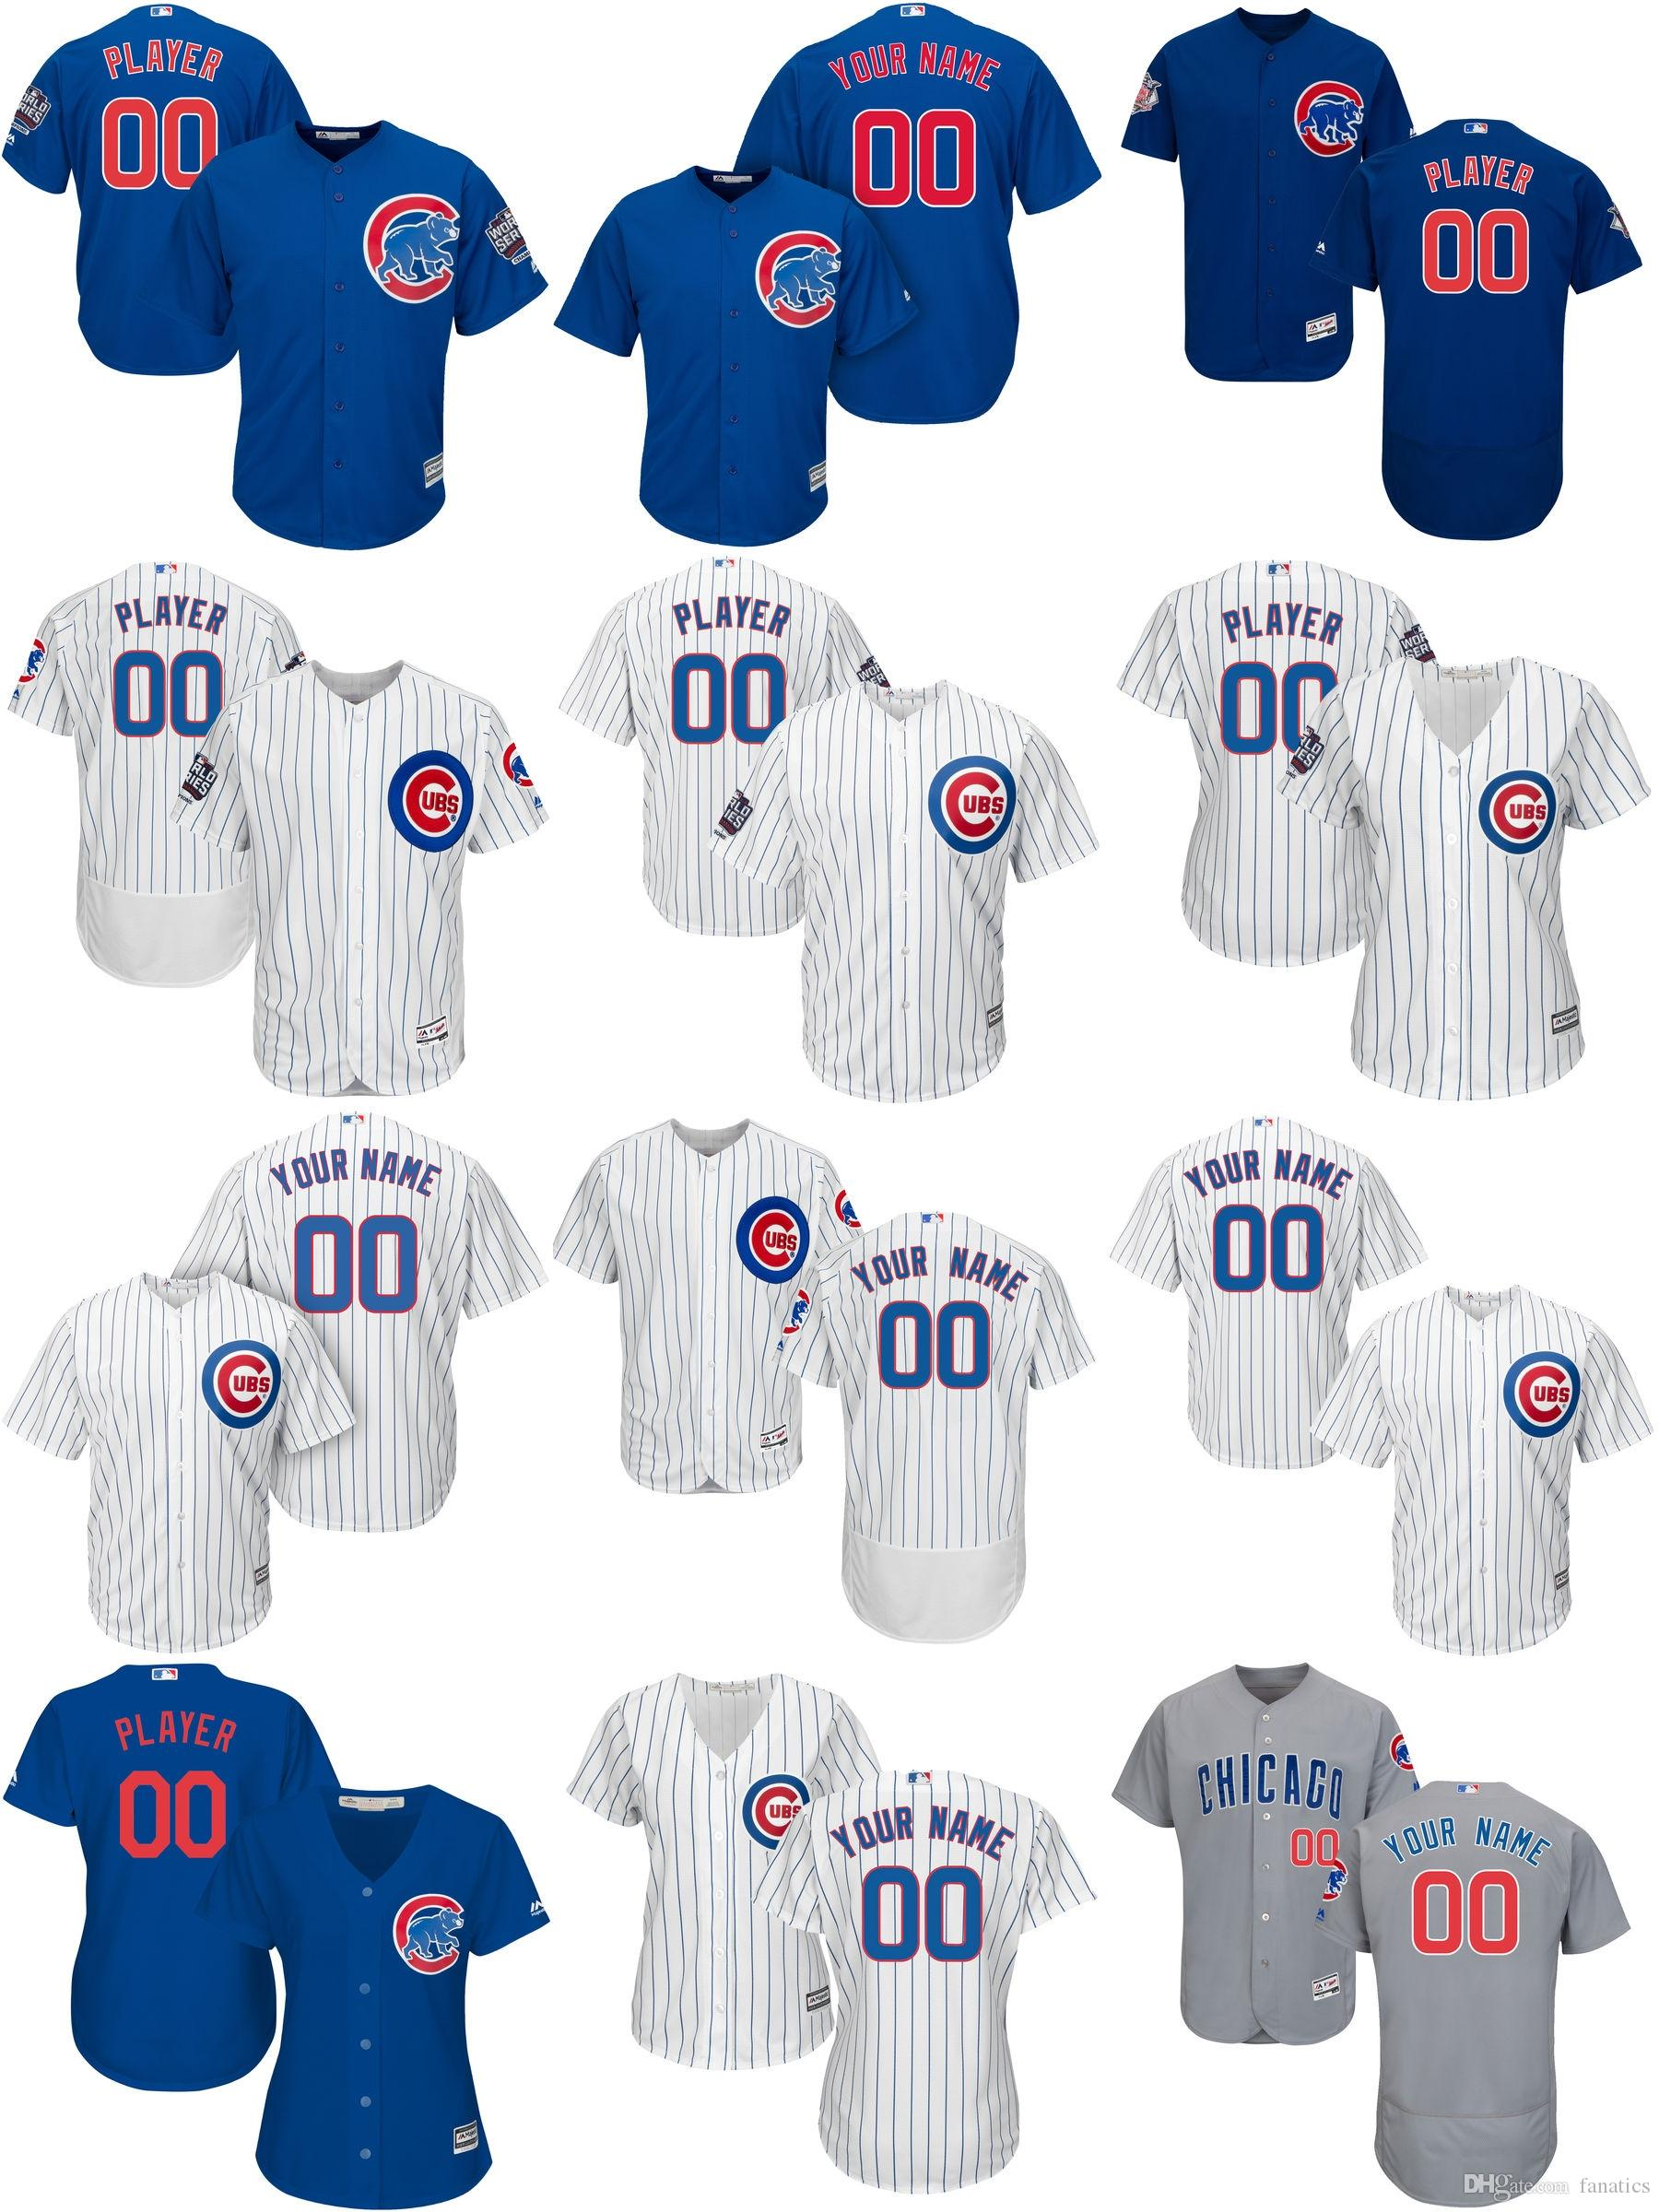 344169c1e ... Mens Womens Kids Customized Personalized Any Name Any Number Chicago  Cubs 2016 World Series Champions Blue .